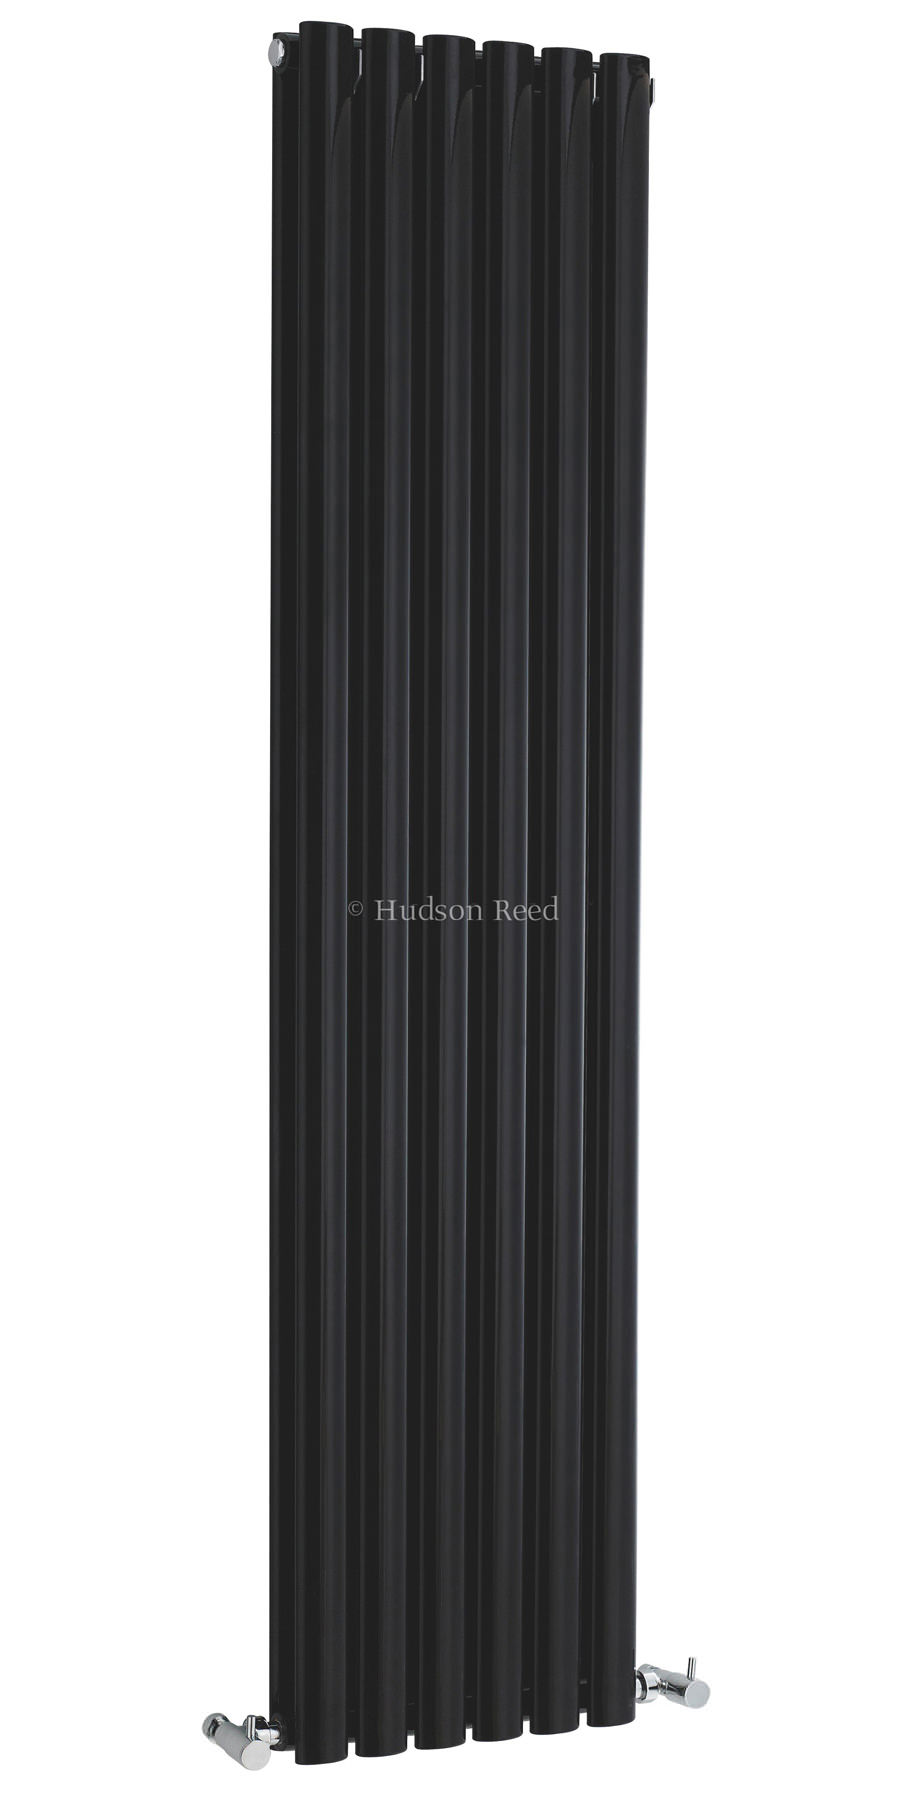 hudson reed revive double panel black radiator 354x1500mm. Black Bedroom Furniture Sets. Home Design Ideas